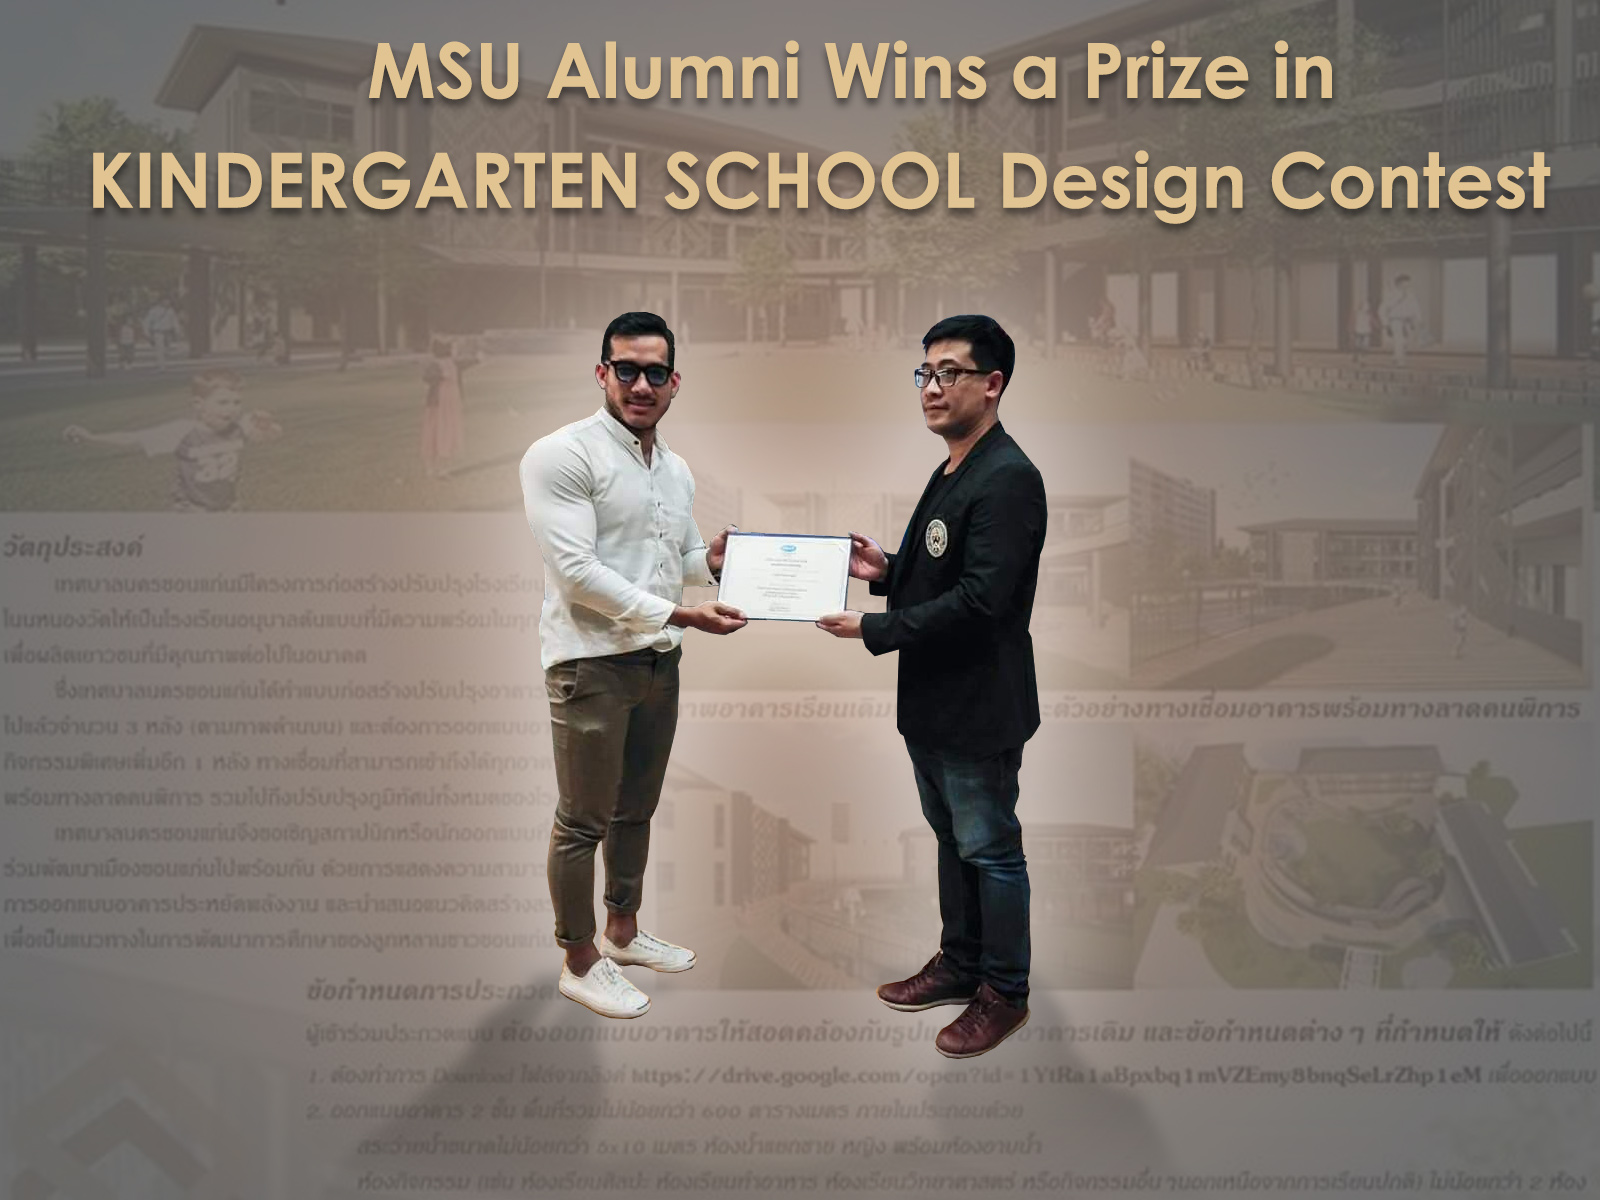 MSU Alumni Wins a Prize in KINDERGARTEN SCHOOL Design Contest